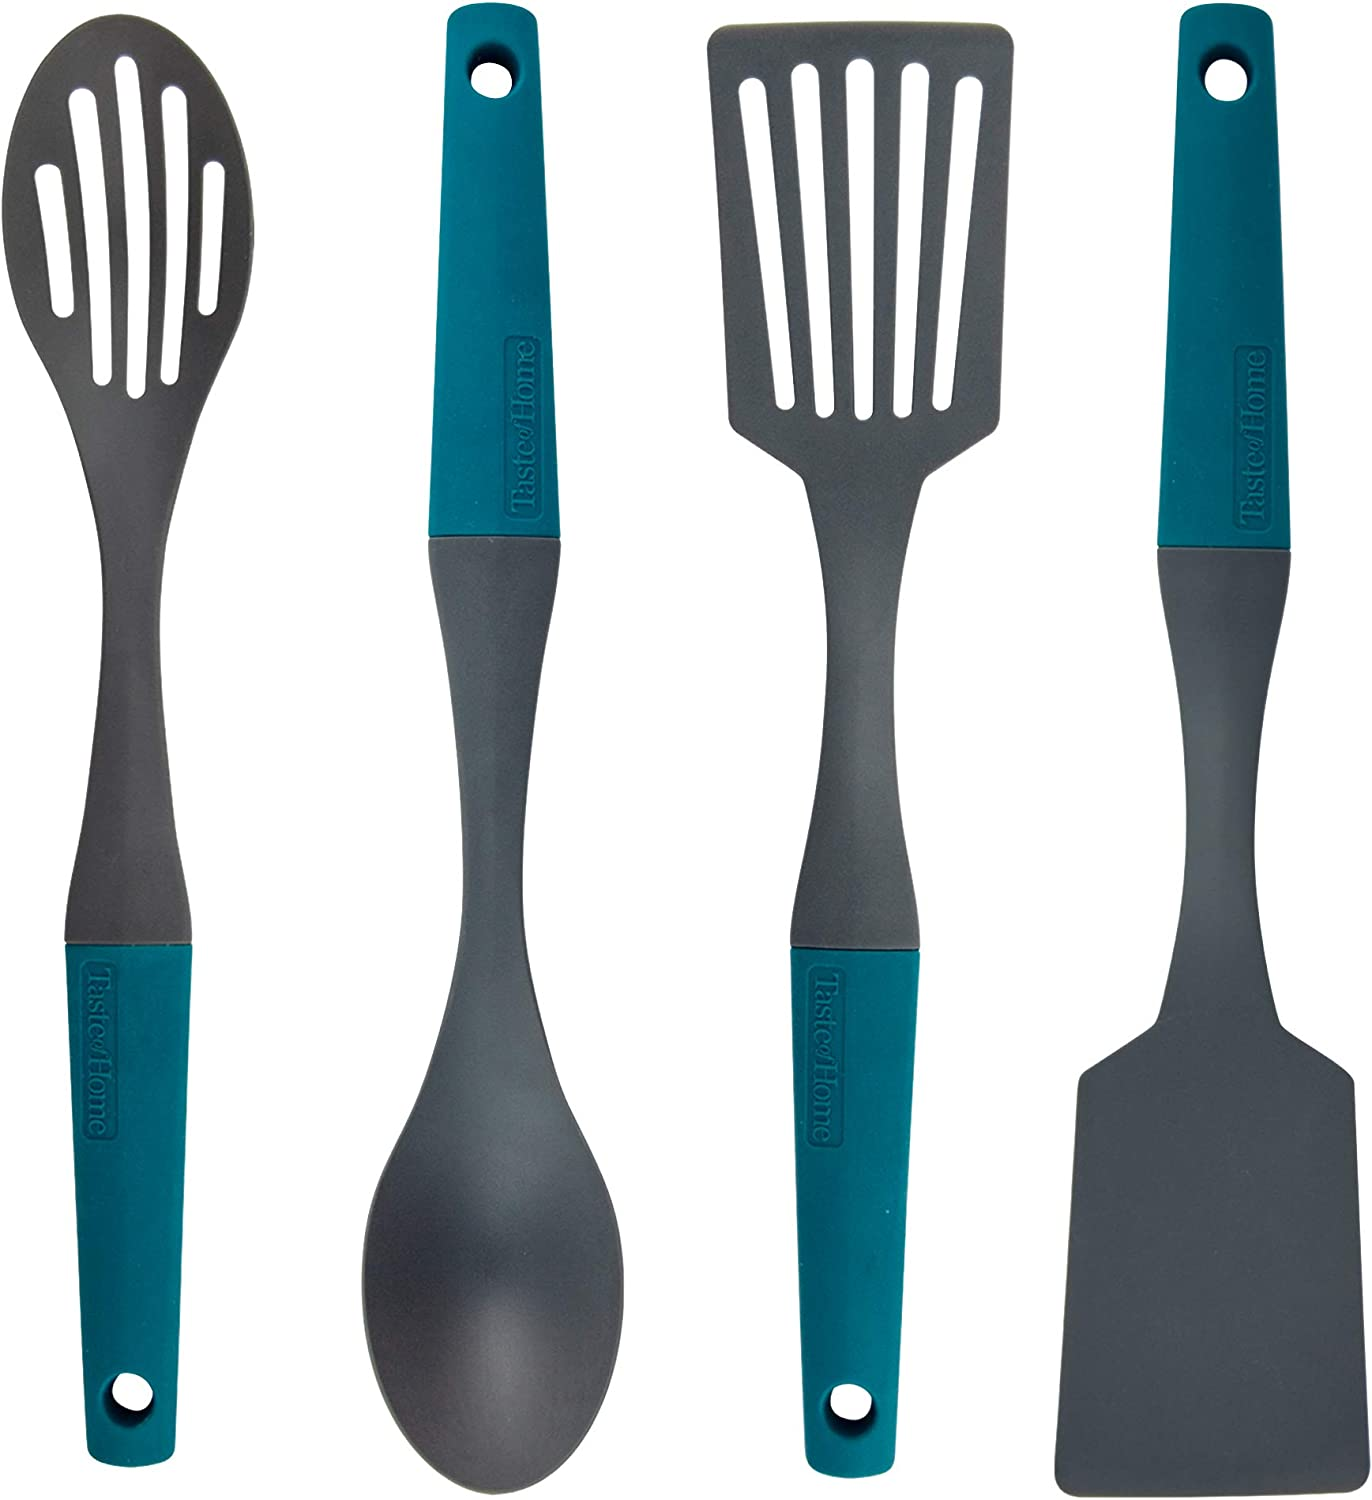 Taste of Home Essential 4 Piece Nylon Kitchen Utensil Set for Nonstick Cookware in Sea Green and Ash Gray